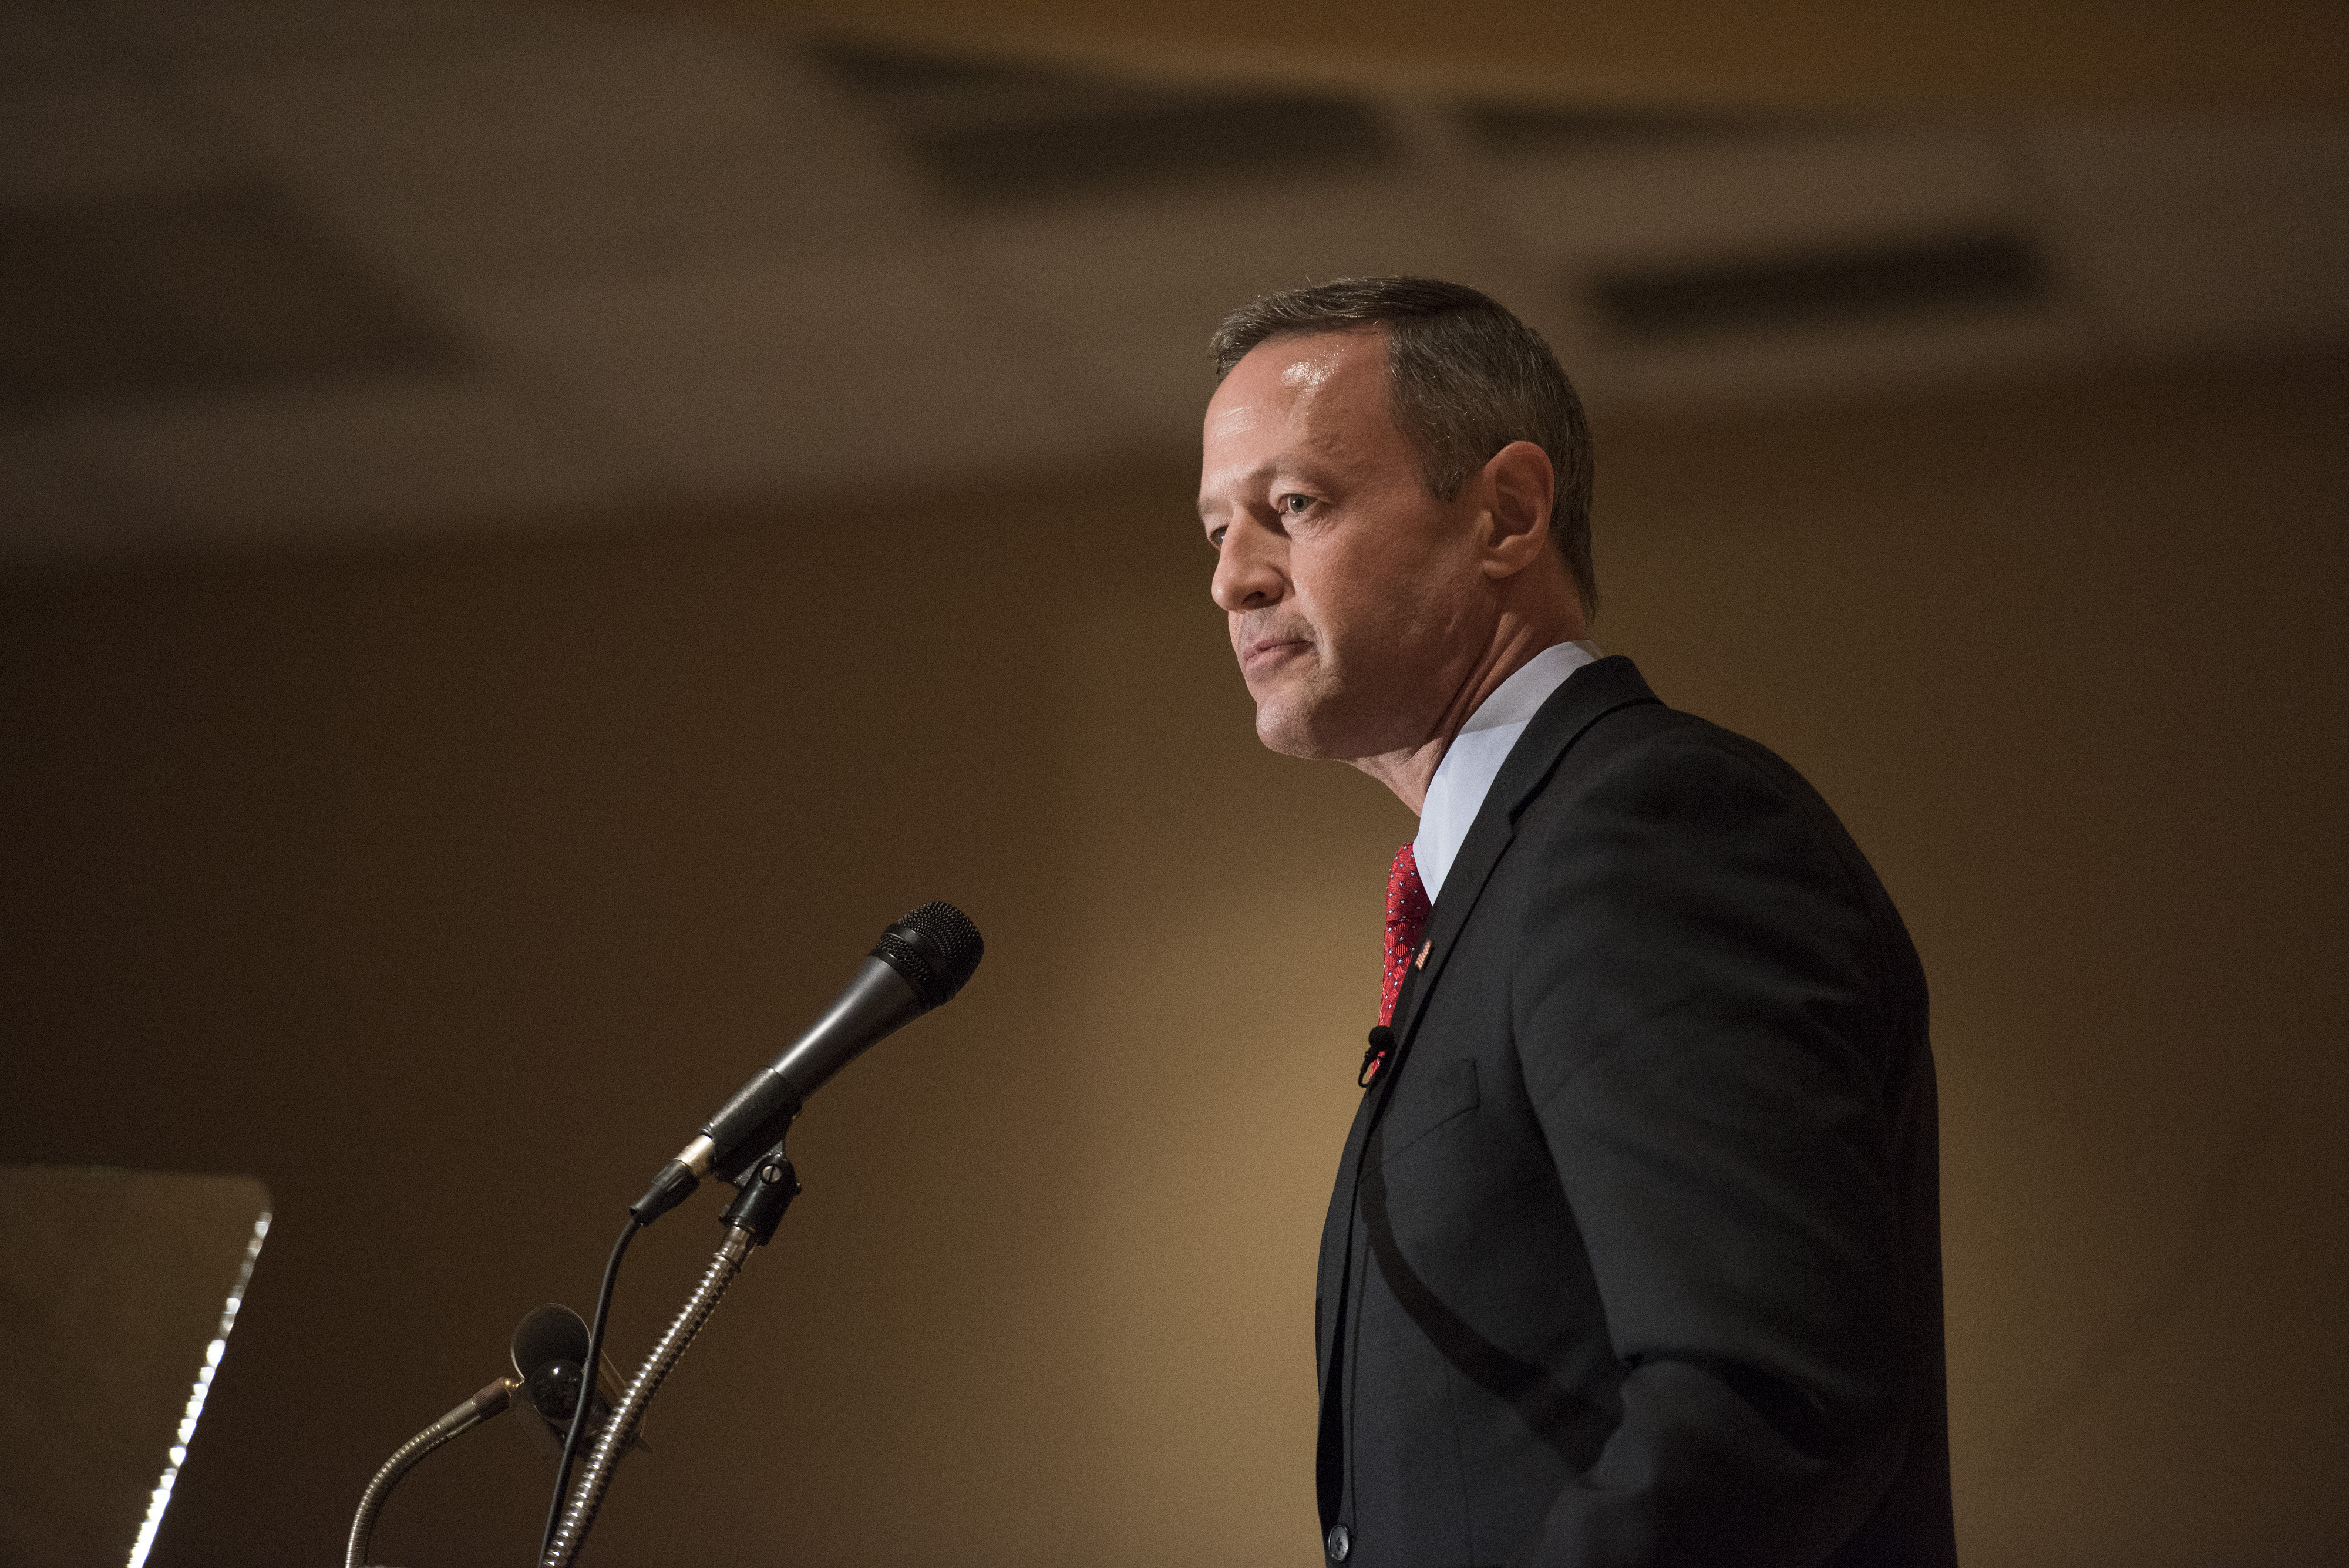 Martin O'Malley, former governor of Maryland and potential Democratic presidential candidate, during the Scott County Democratic Party dinner in Davenport, Iowa, U.S., on Friday, March 20, 2015.